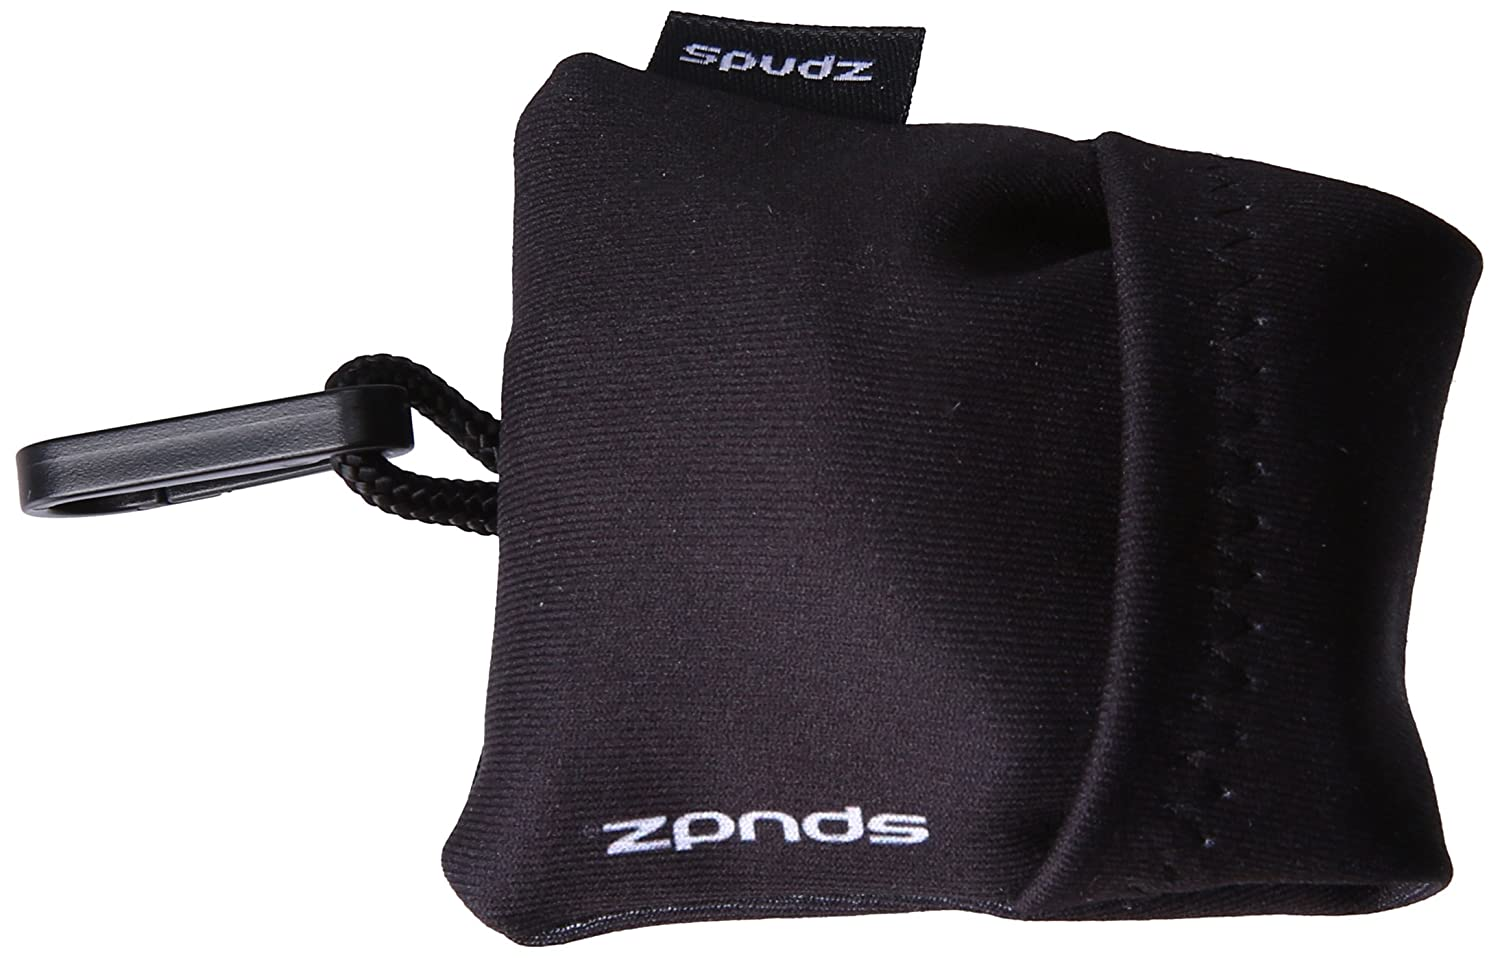 and Lens Cleaner in Compact Pouch Microfiber Cloth Alpine Innovations Black Spudz Ultra Screen Cleaner 10x10